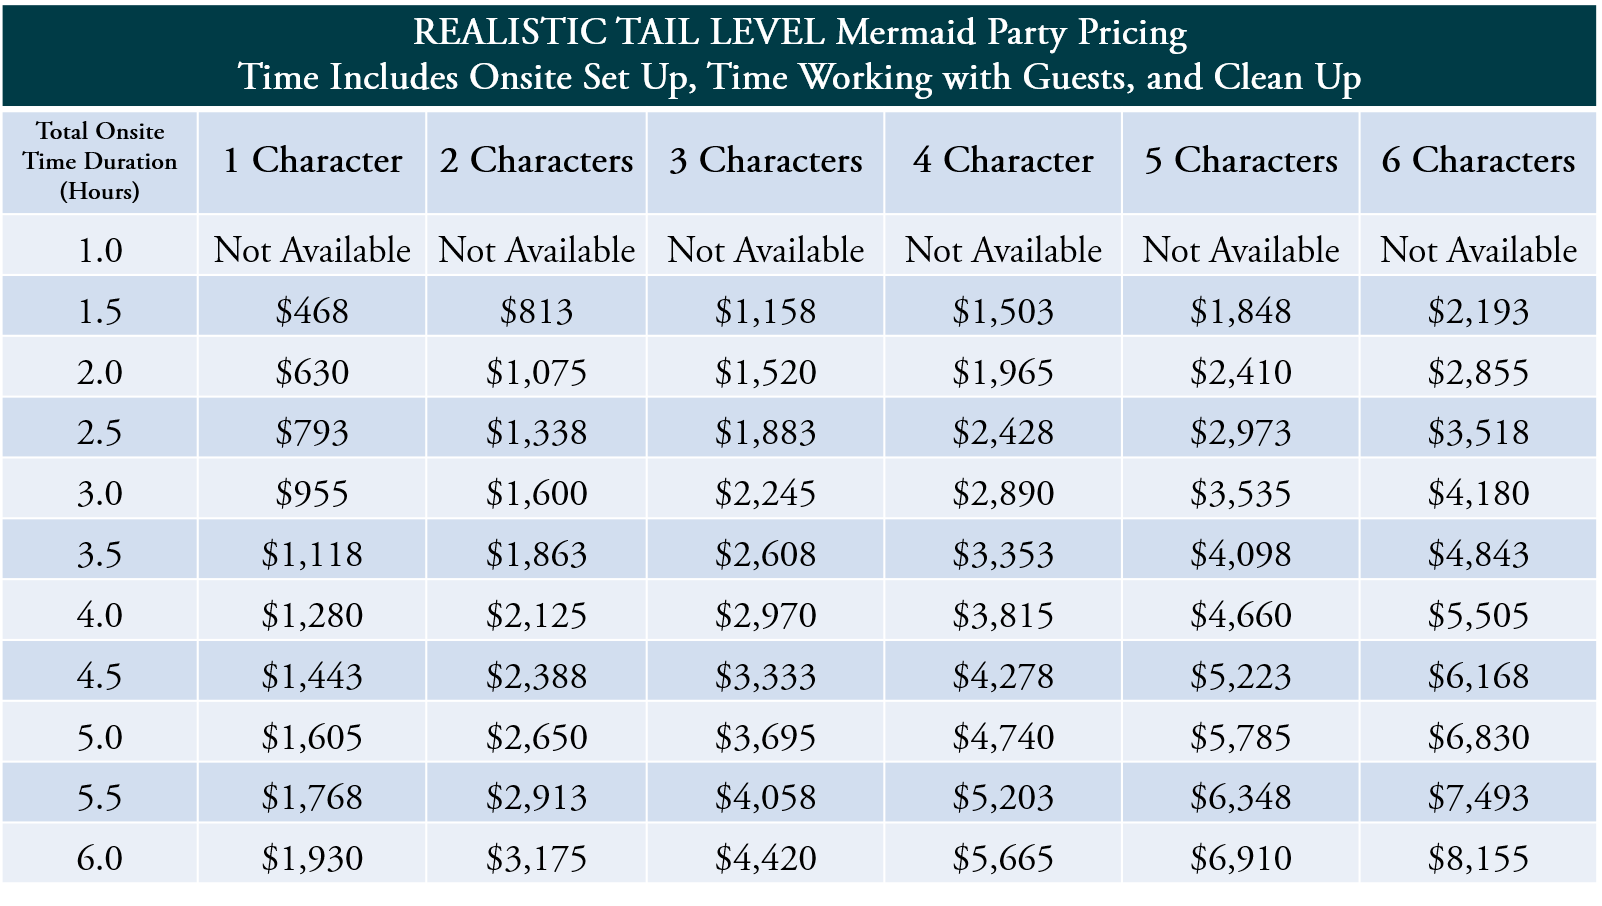 """Mermaid Parties require 1 hour total of load in / clean up time. This time spent is included inside of their total onsite time duration listed above. As an example, """"1.5 hours"""" of total onsite time duration means that 30 minutes will be spent with onsite set-up / changing / check-in, 30 minutes will be spent with guests, and 30 minutes will be spent on onsite clean-up / changing / departure."""